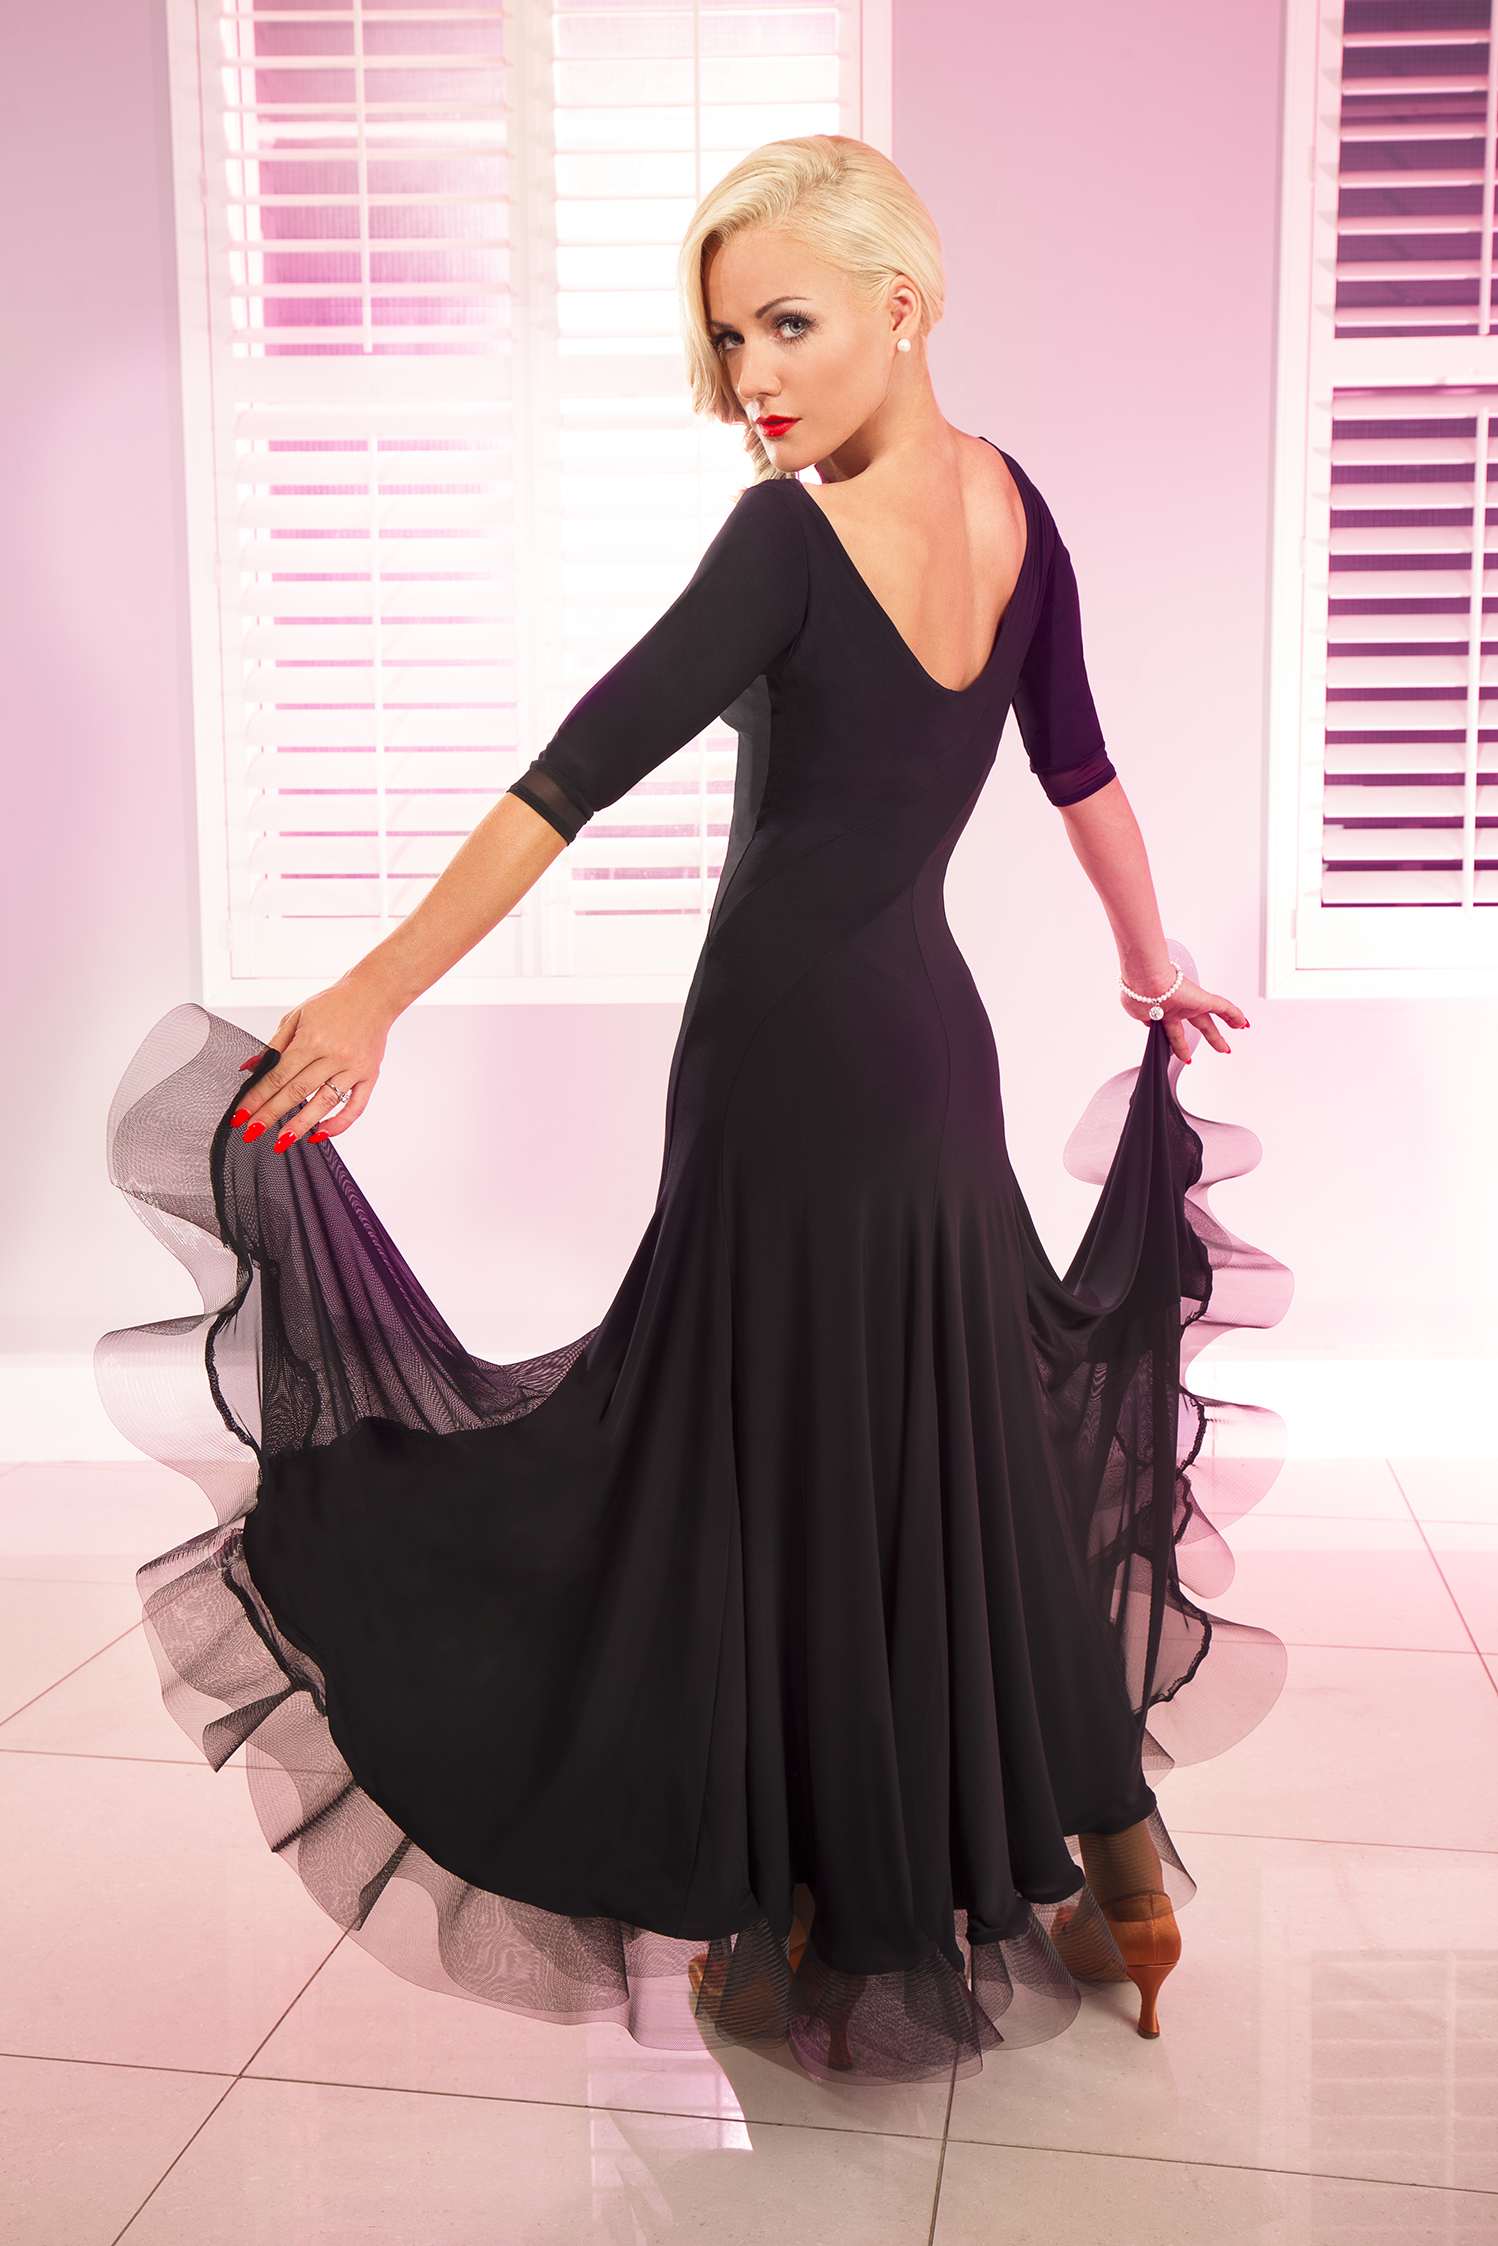 Women S Dresses Chrisanne Tania Pandora Dress Black 275 00 From Vedance The Very Best In Ballroom And Latin Dance Shoes Dancewear